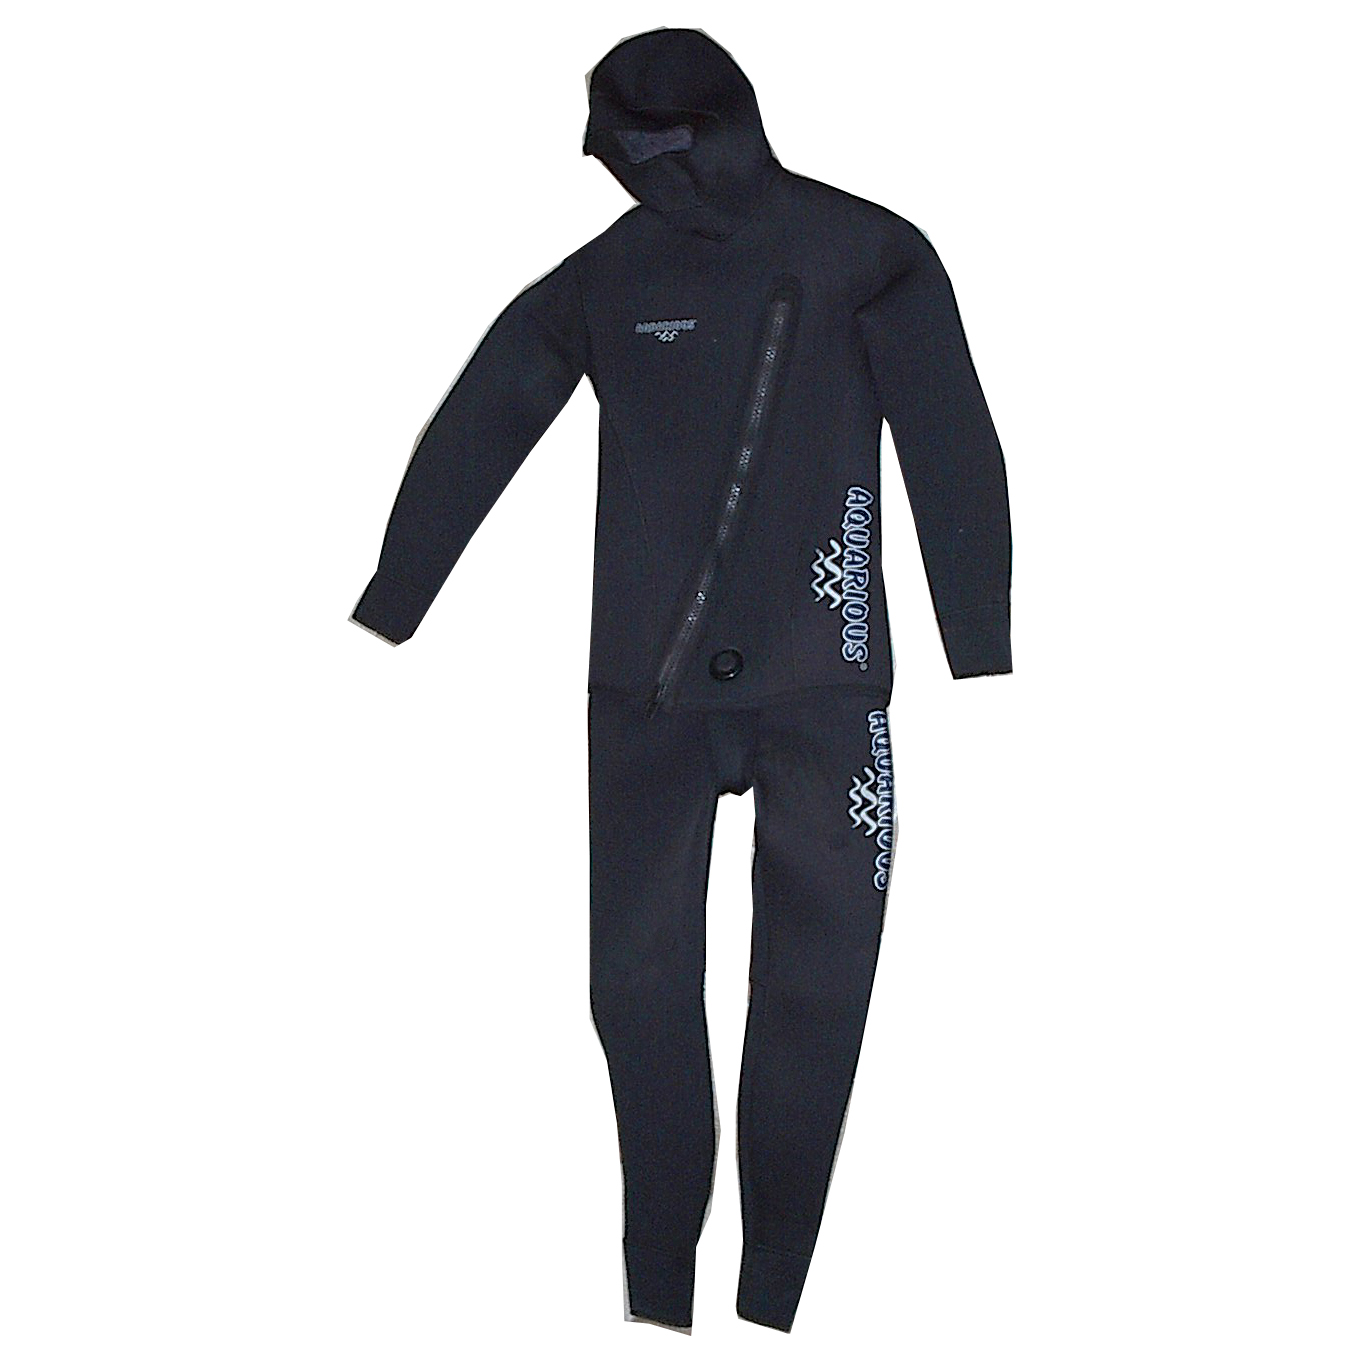 Wetsuit with zipper